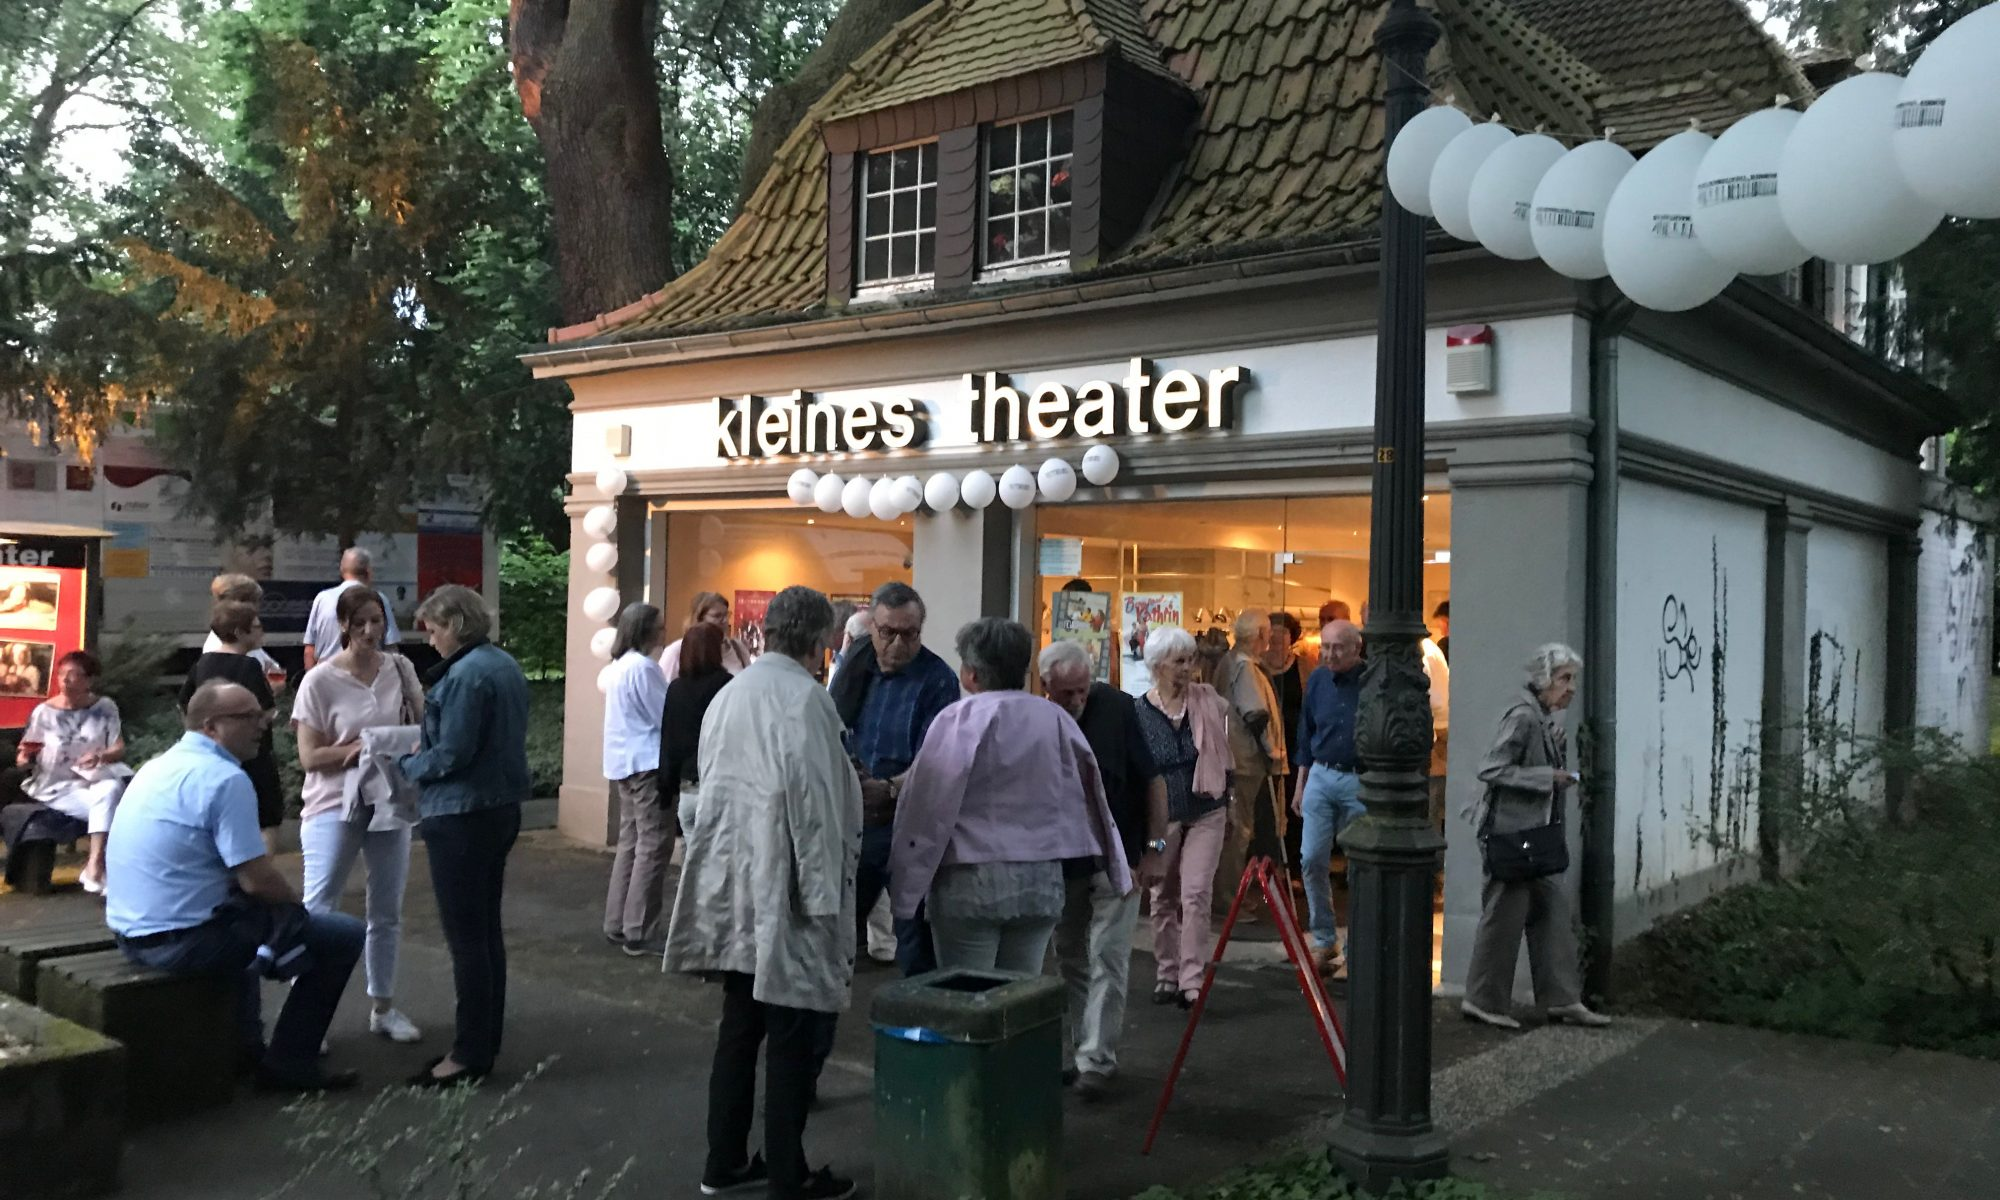 Kleines Theater Bad Godesberg Kleines Theater Bad Godesberg Frank Oppermann